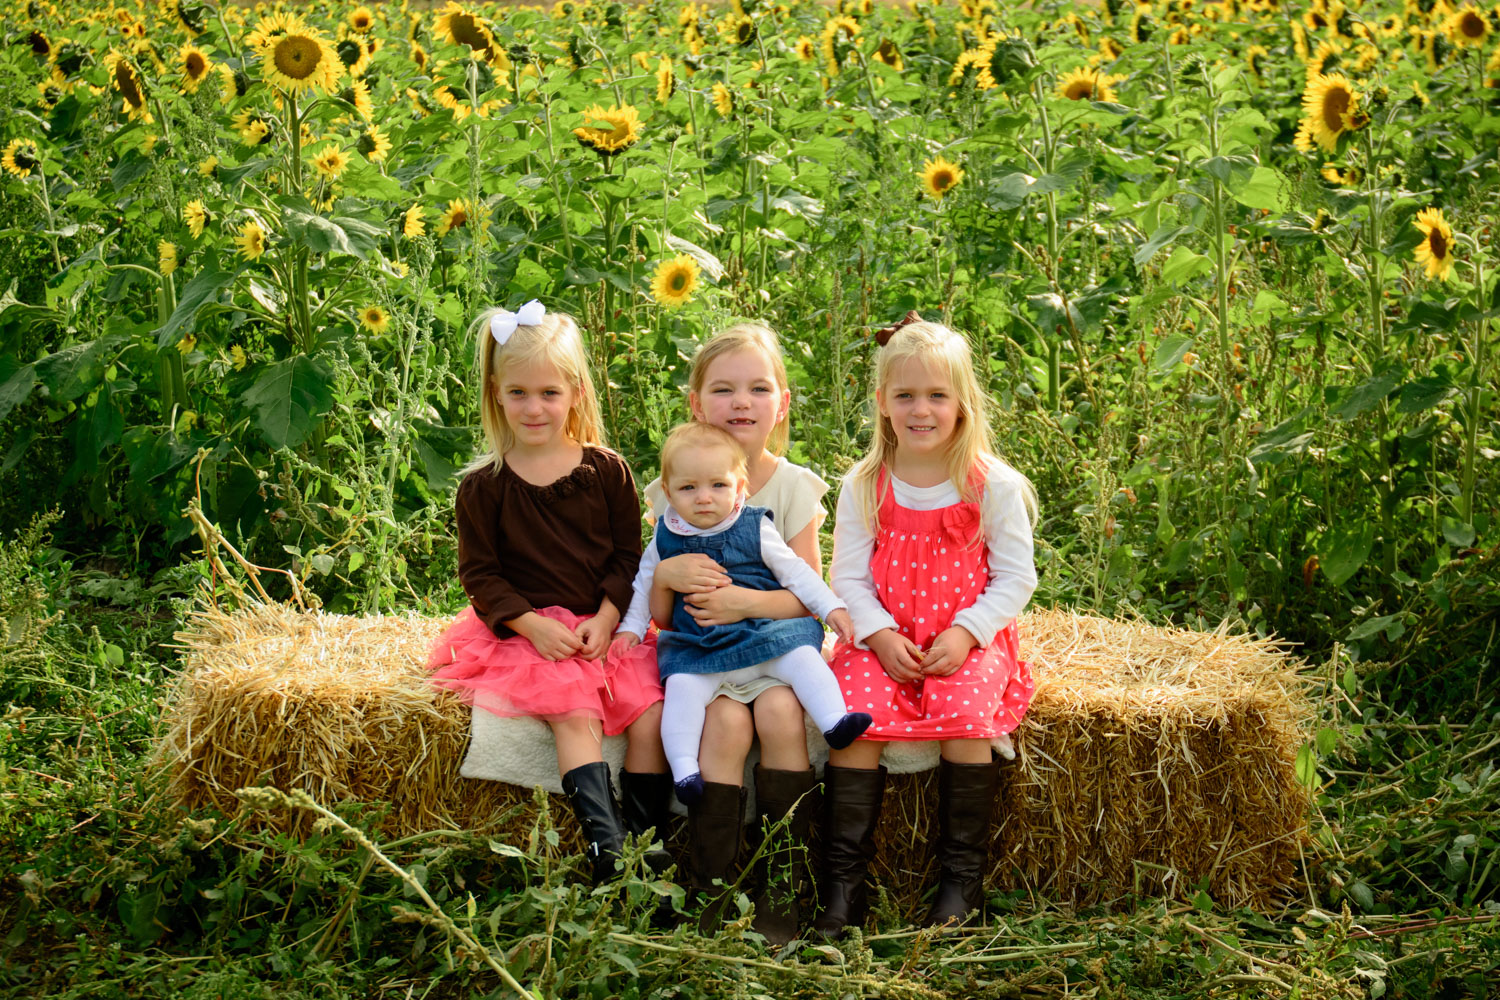 Family photo tips - siblings